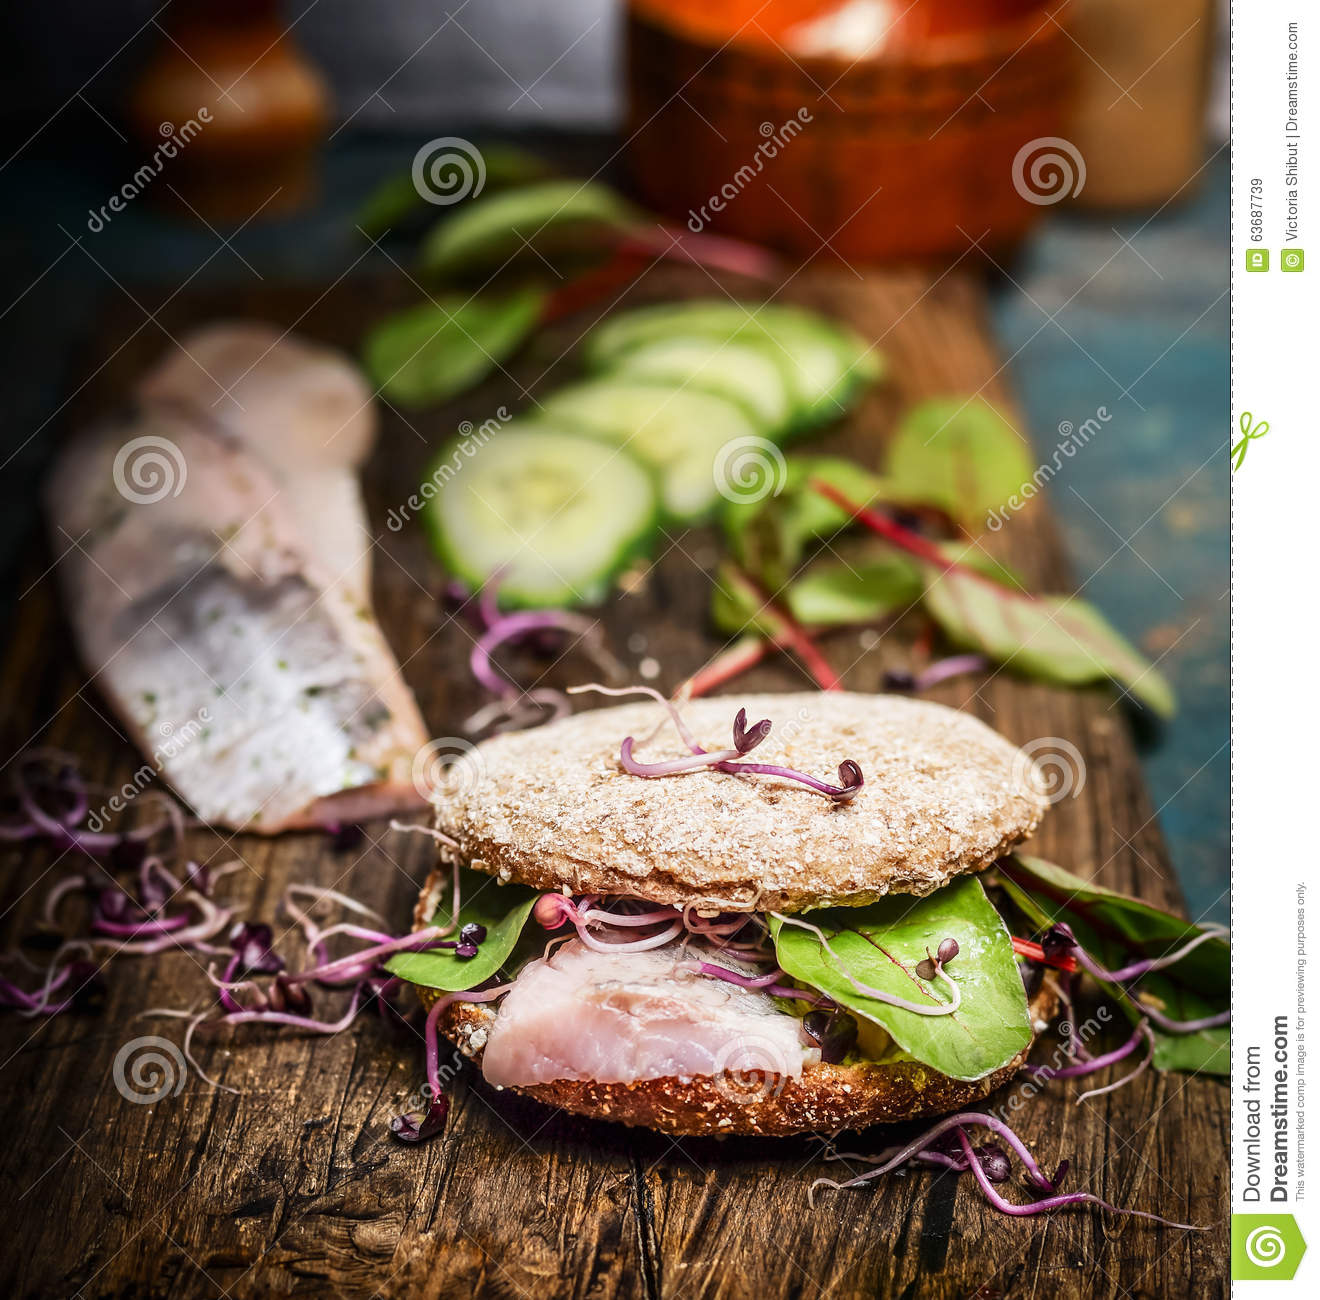 Download Healthy Fish Sandwich With Herring, Cucumber And Sprouts On Rustic Kitchen Table Stock Image - Image of board, bread: 63687739